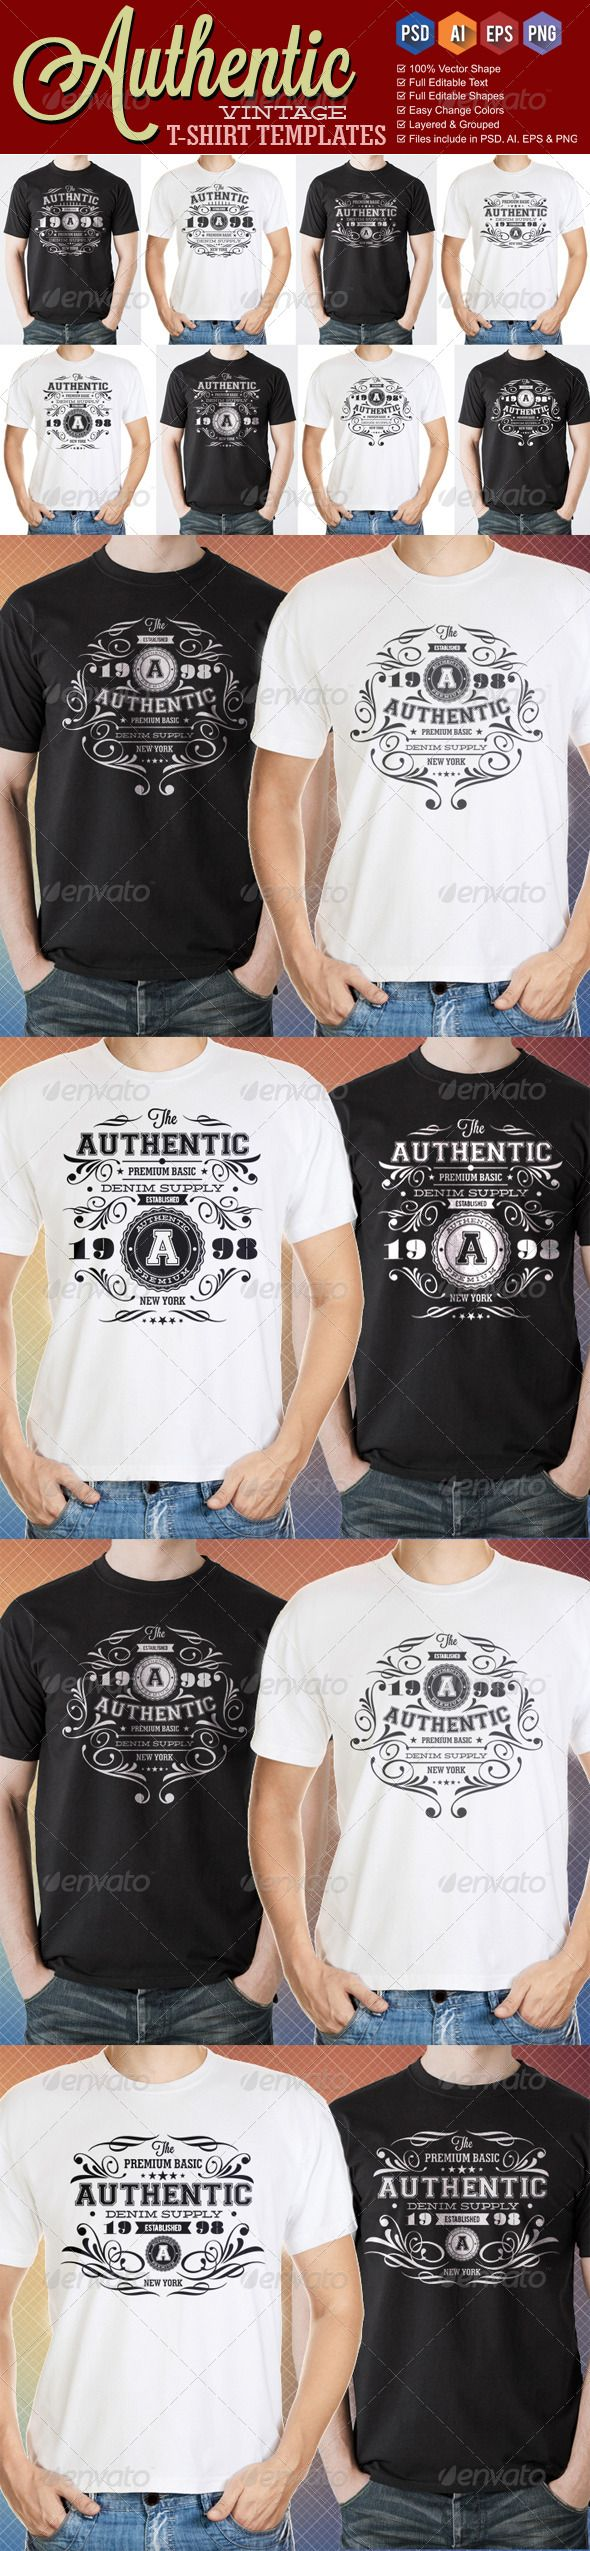 White t shirt eps - Authentic Vintage T Shirt Templates